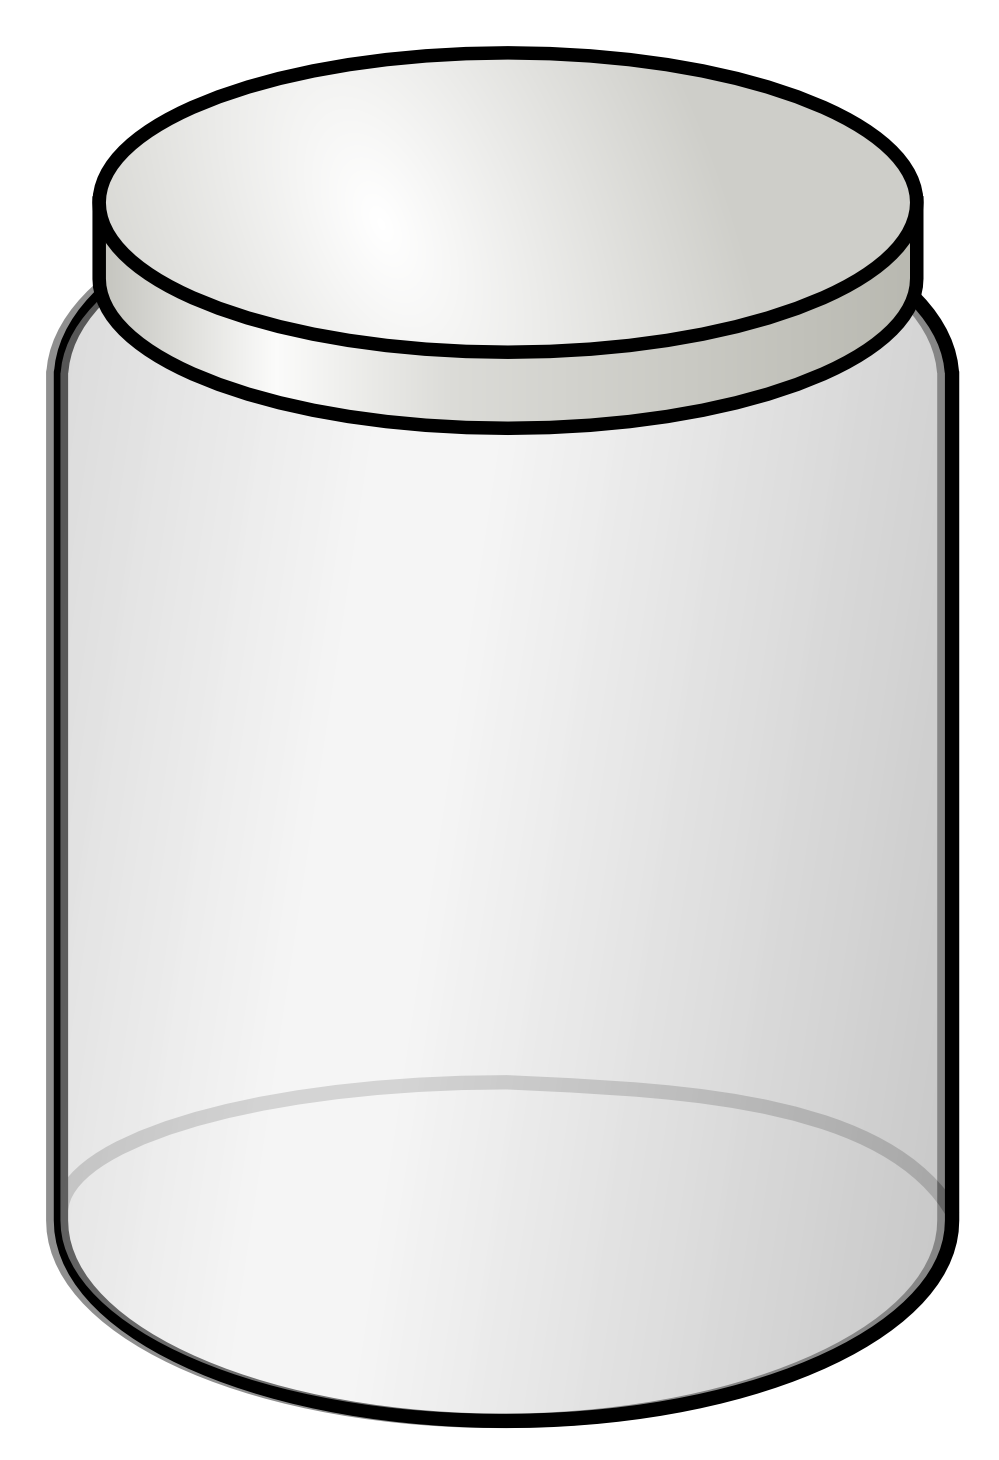 Transparent jar vector. Collection of free ebbed